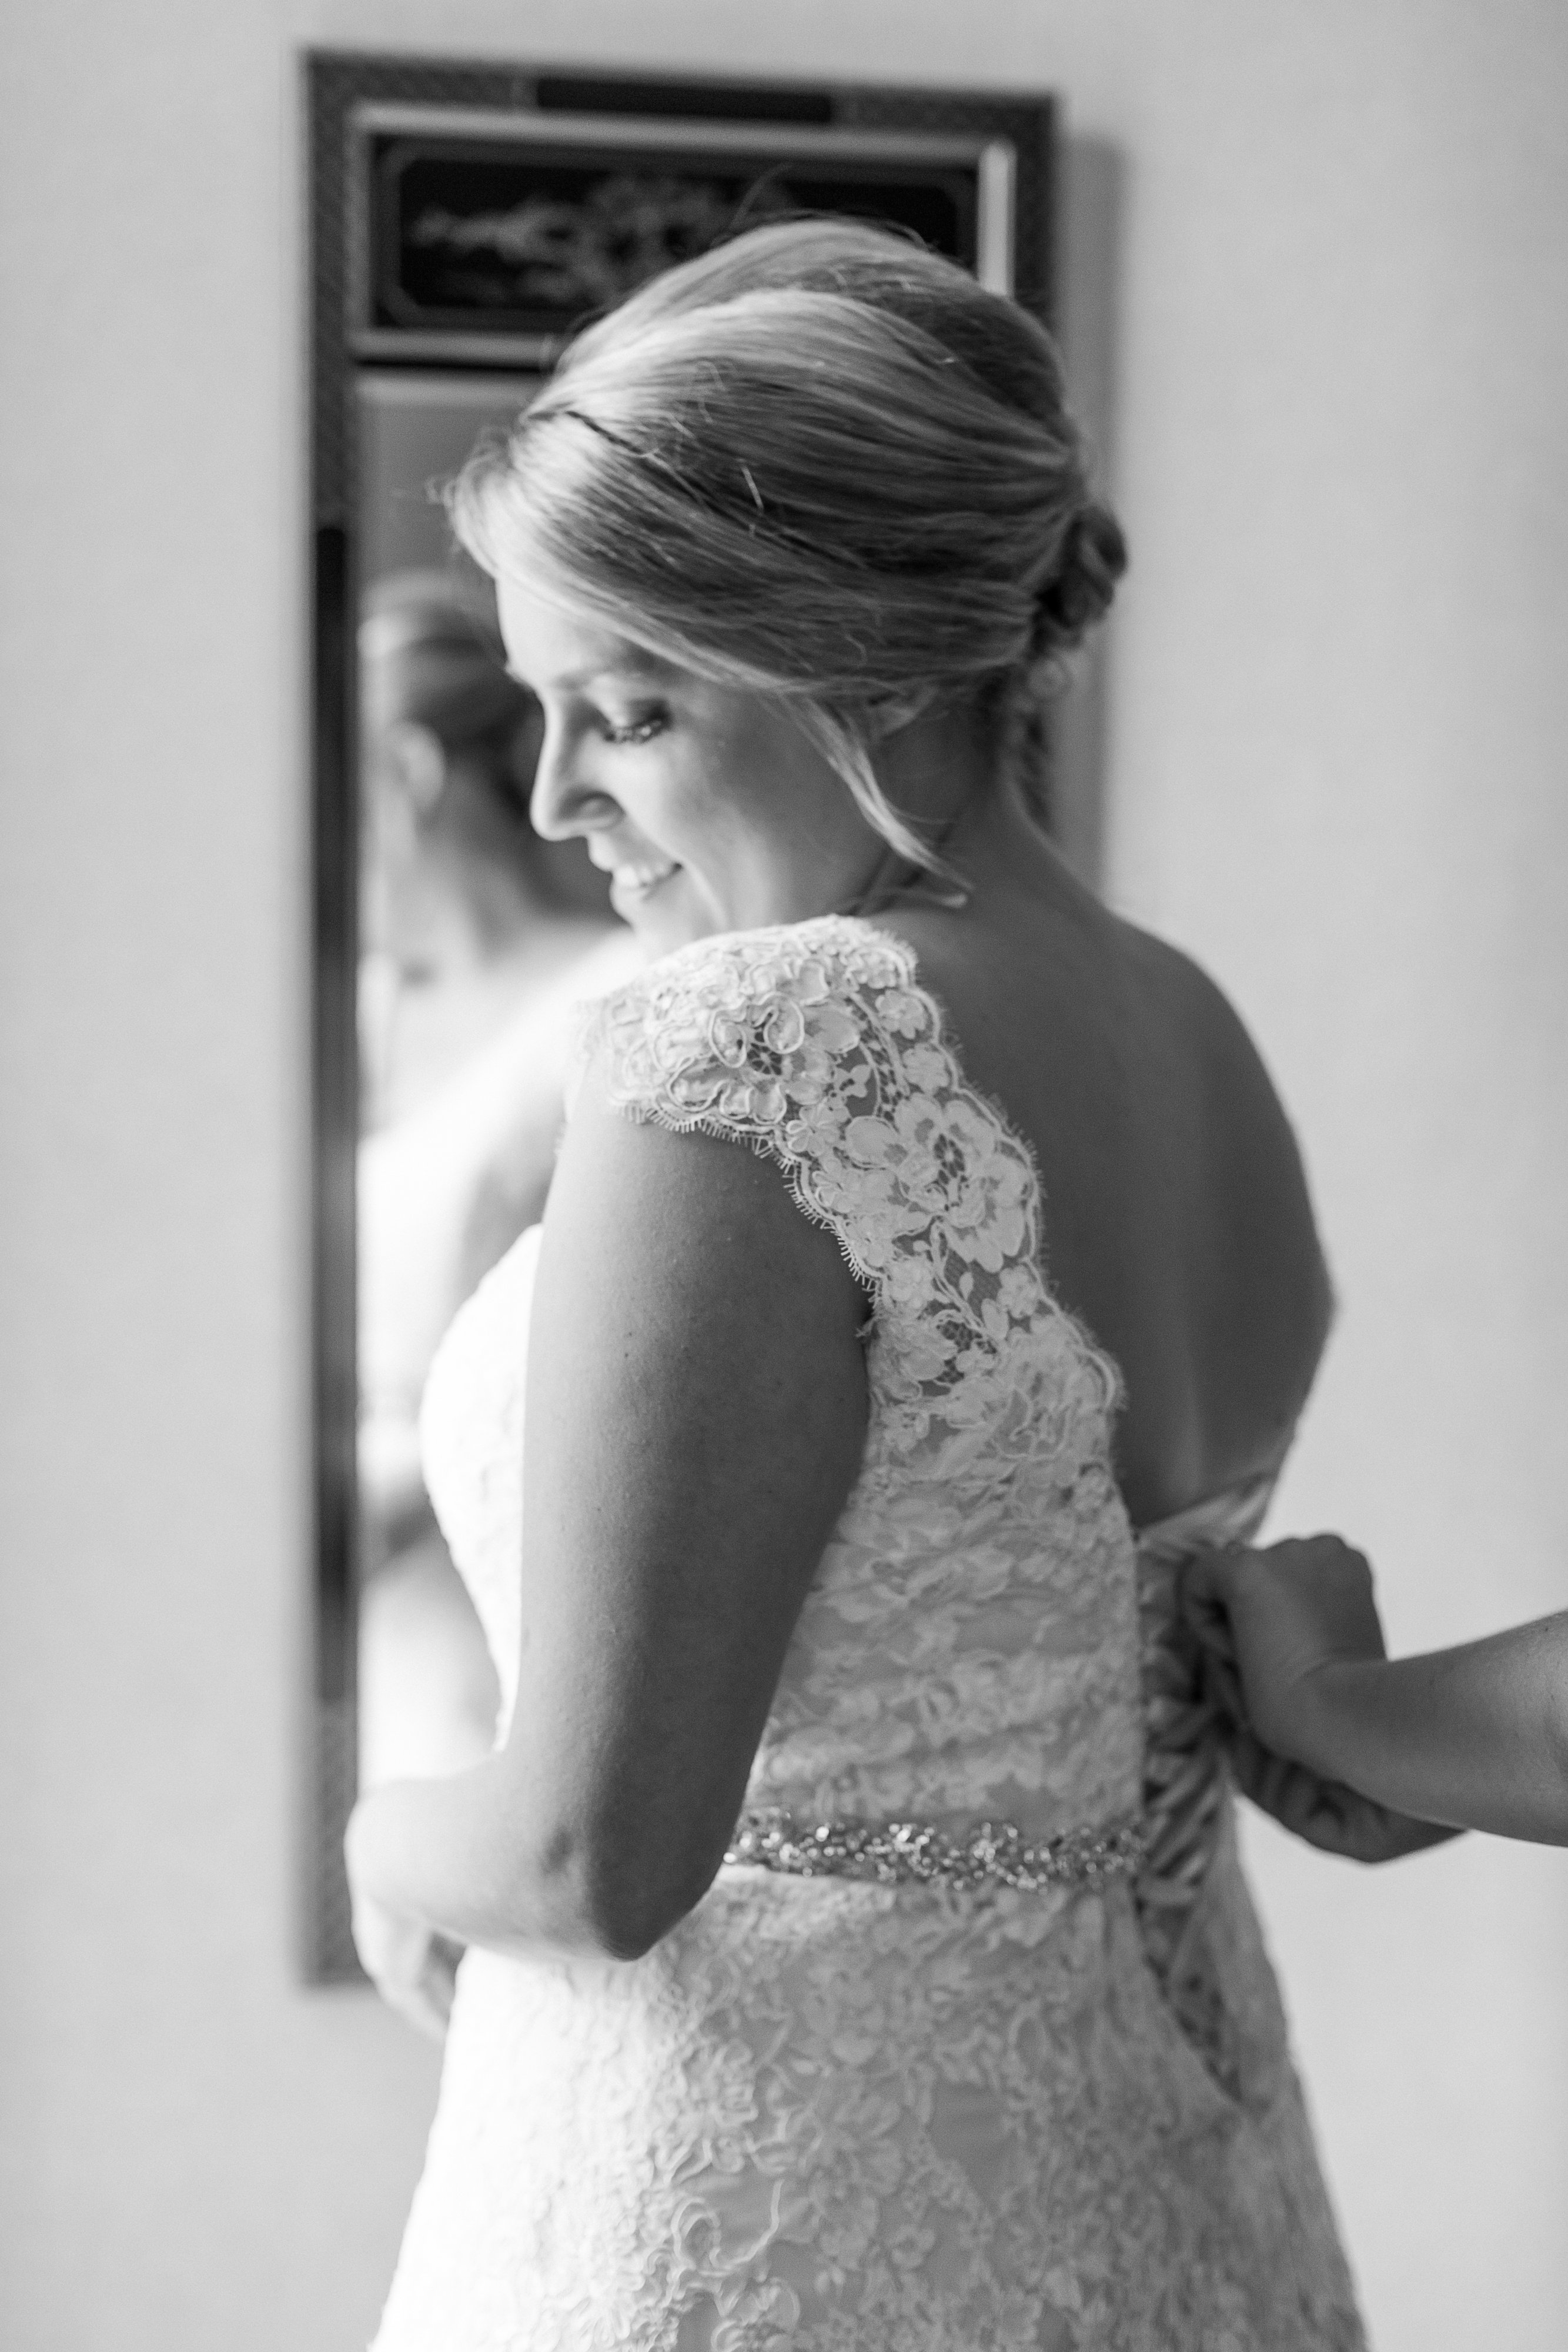 View More: http://brittanyclaud.pass.us/caroline--dean-wedding